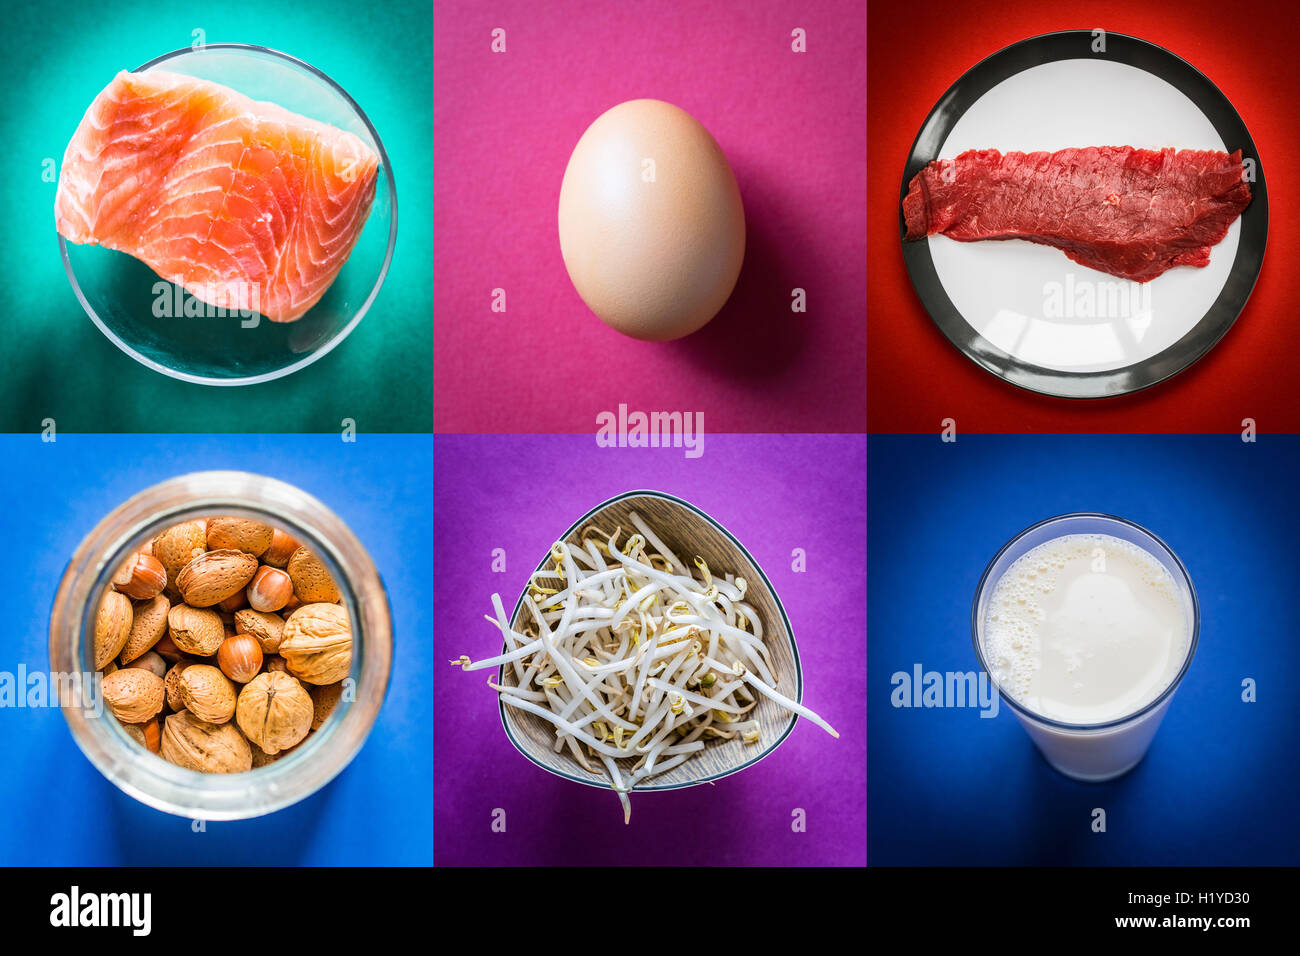 Protein-rich foods. - Stock Image